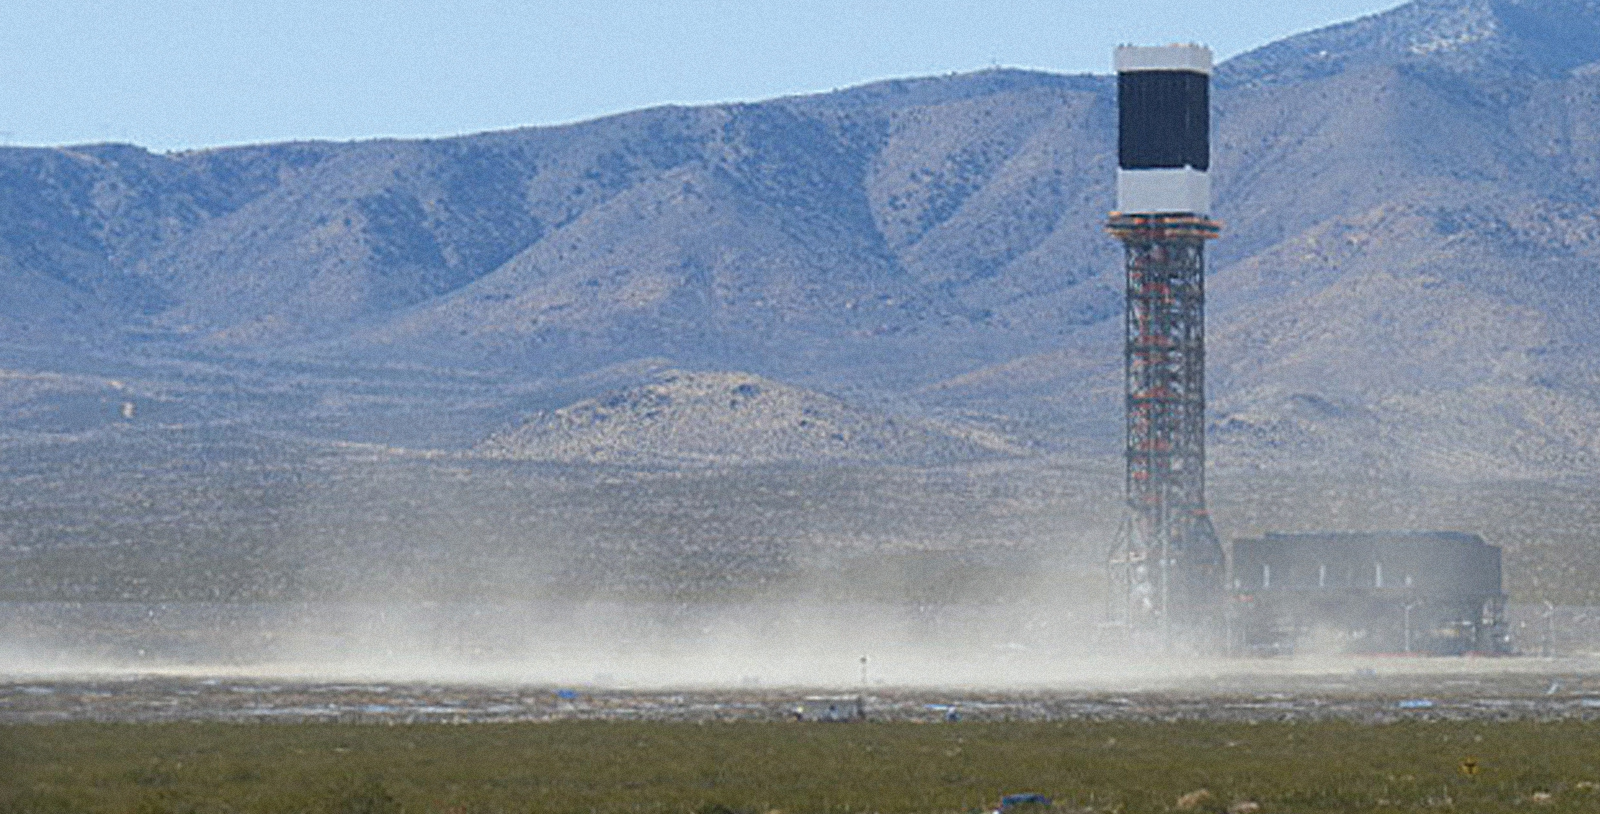 Dust blowing at the Ivanpah Solar Energy Facility. Photo by Basin and Range Watch